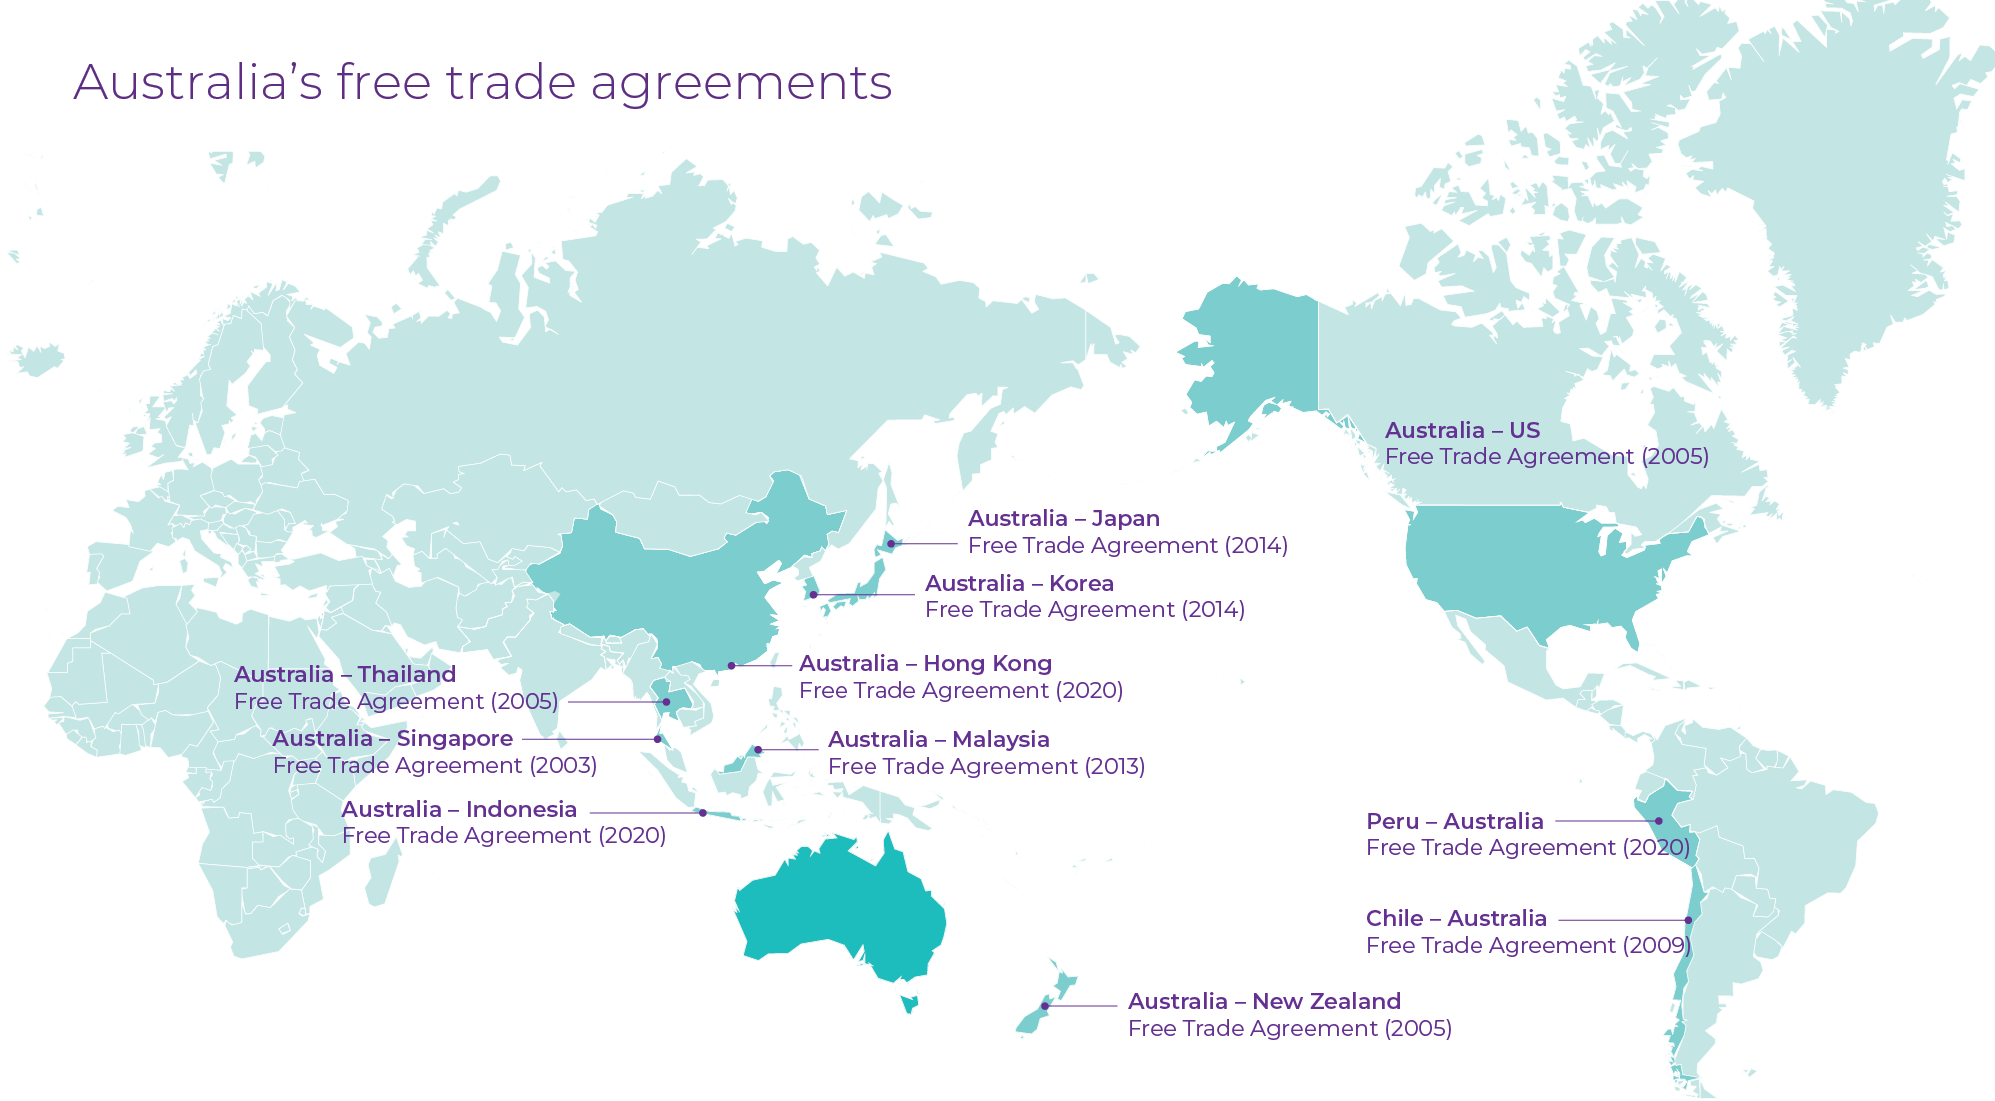 Australia Free Trade Agreements